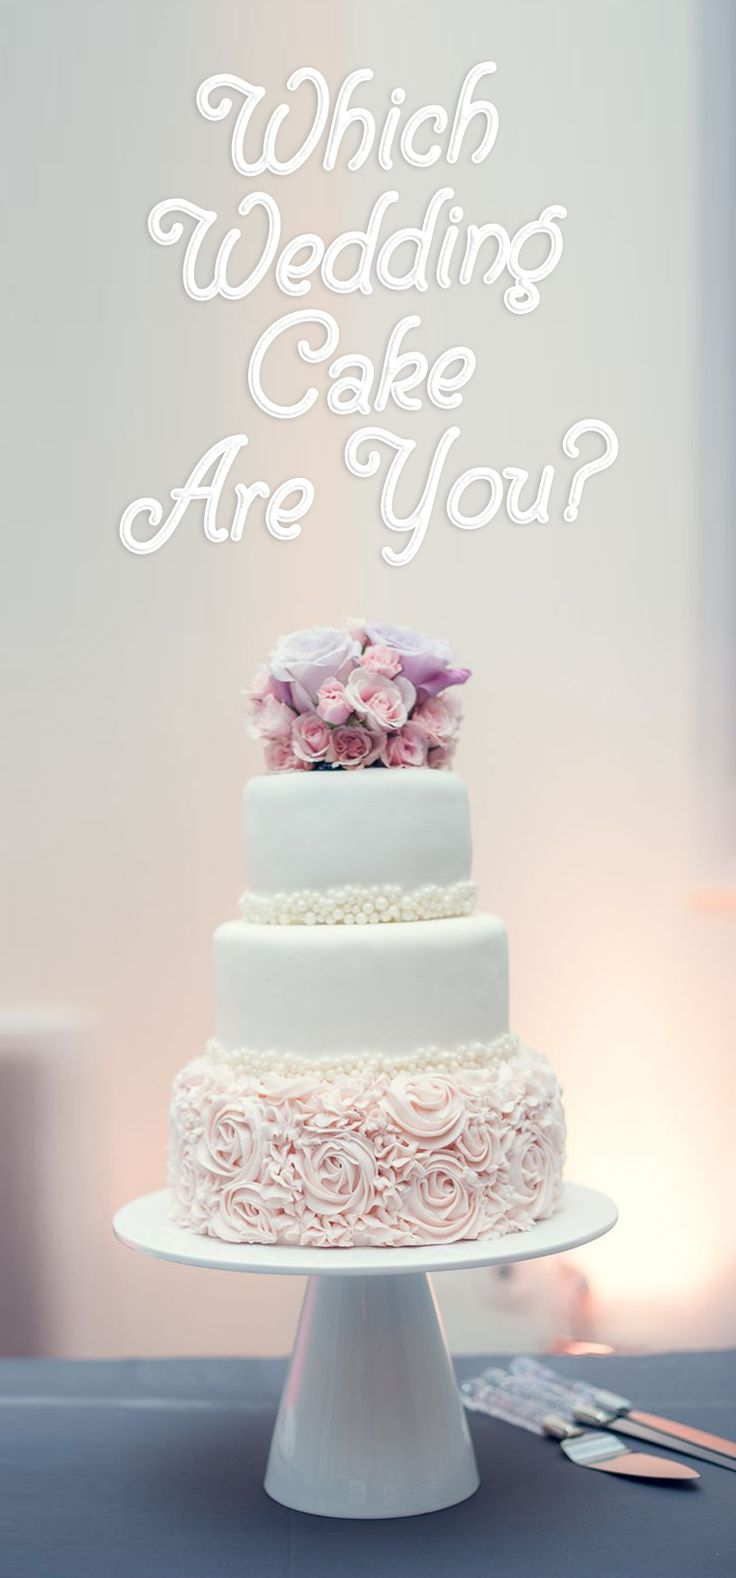 The traditional white lace cake or a colorful rainbow to match your vivacious personality . Find out which one are you?